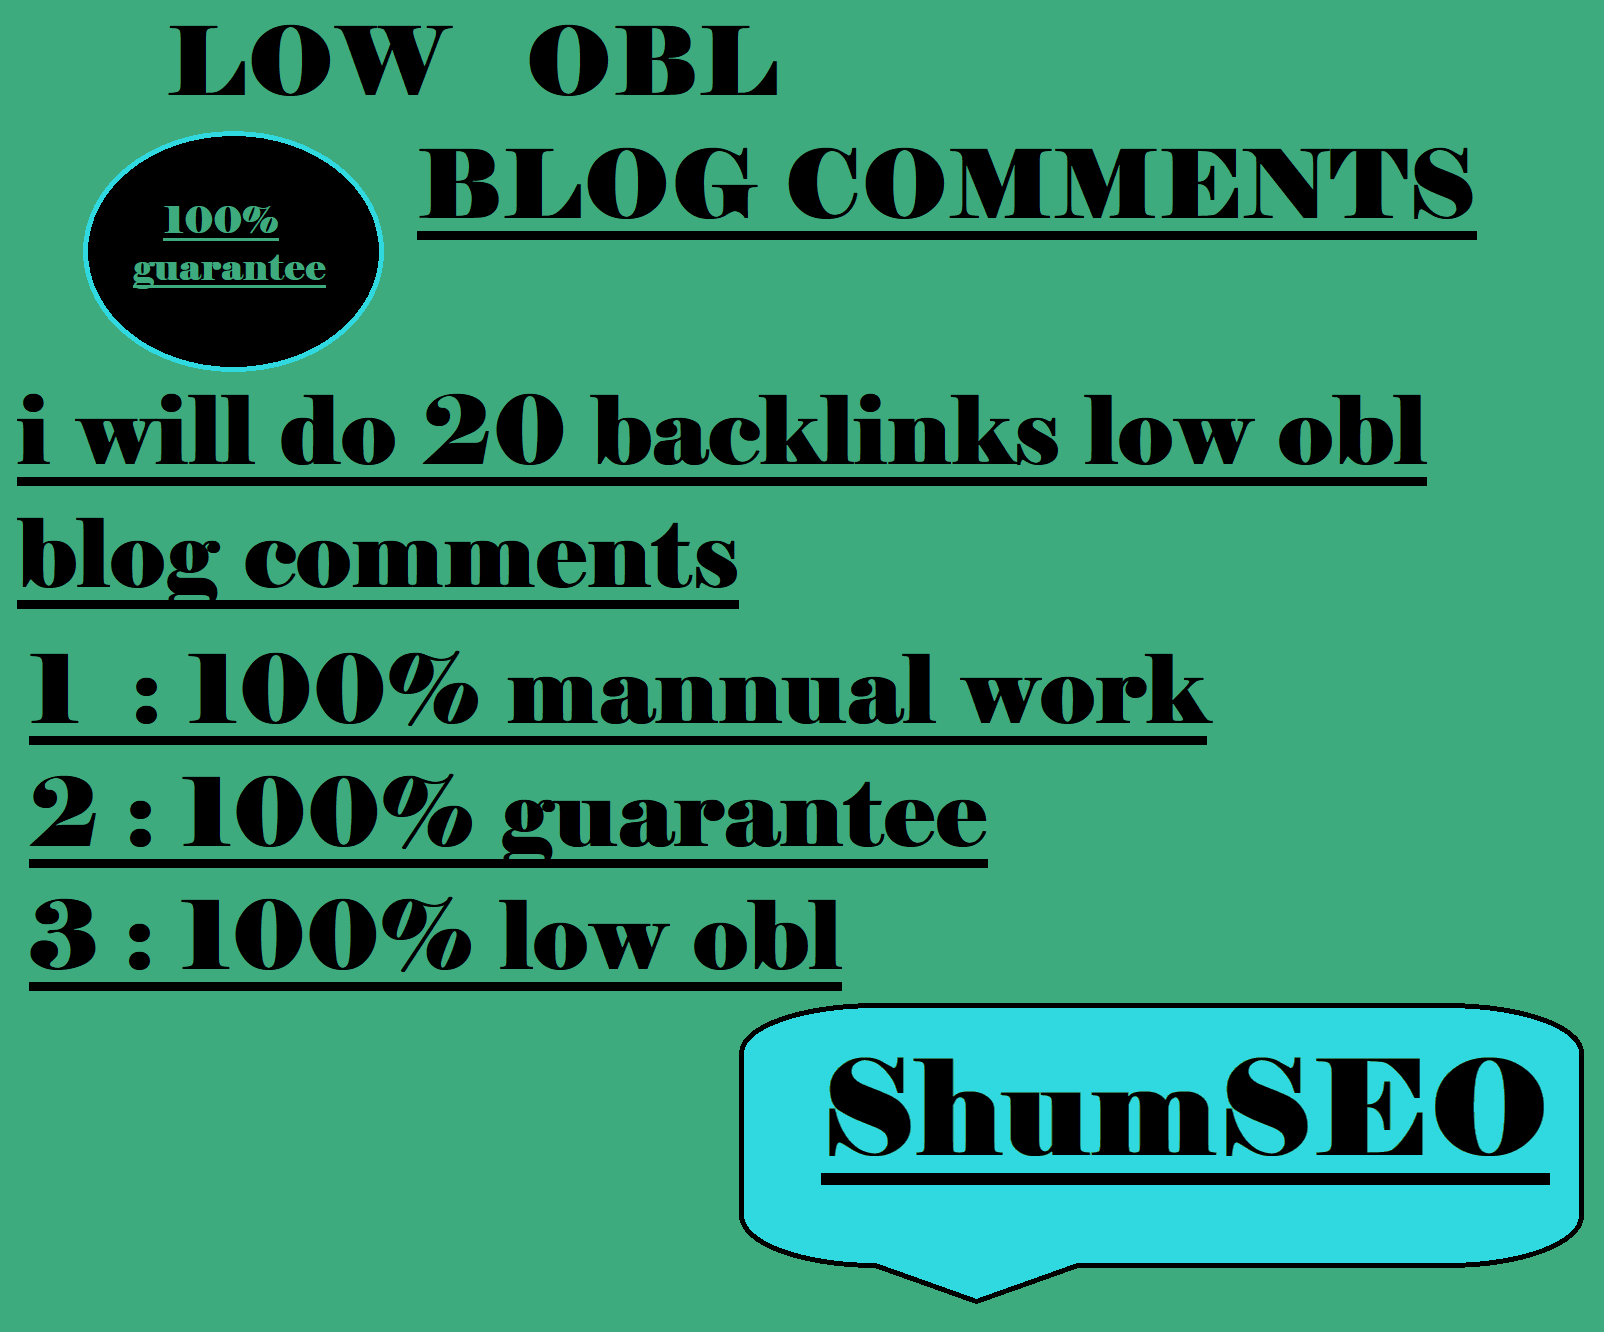 i will do 20 backlinks low obl blog comments